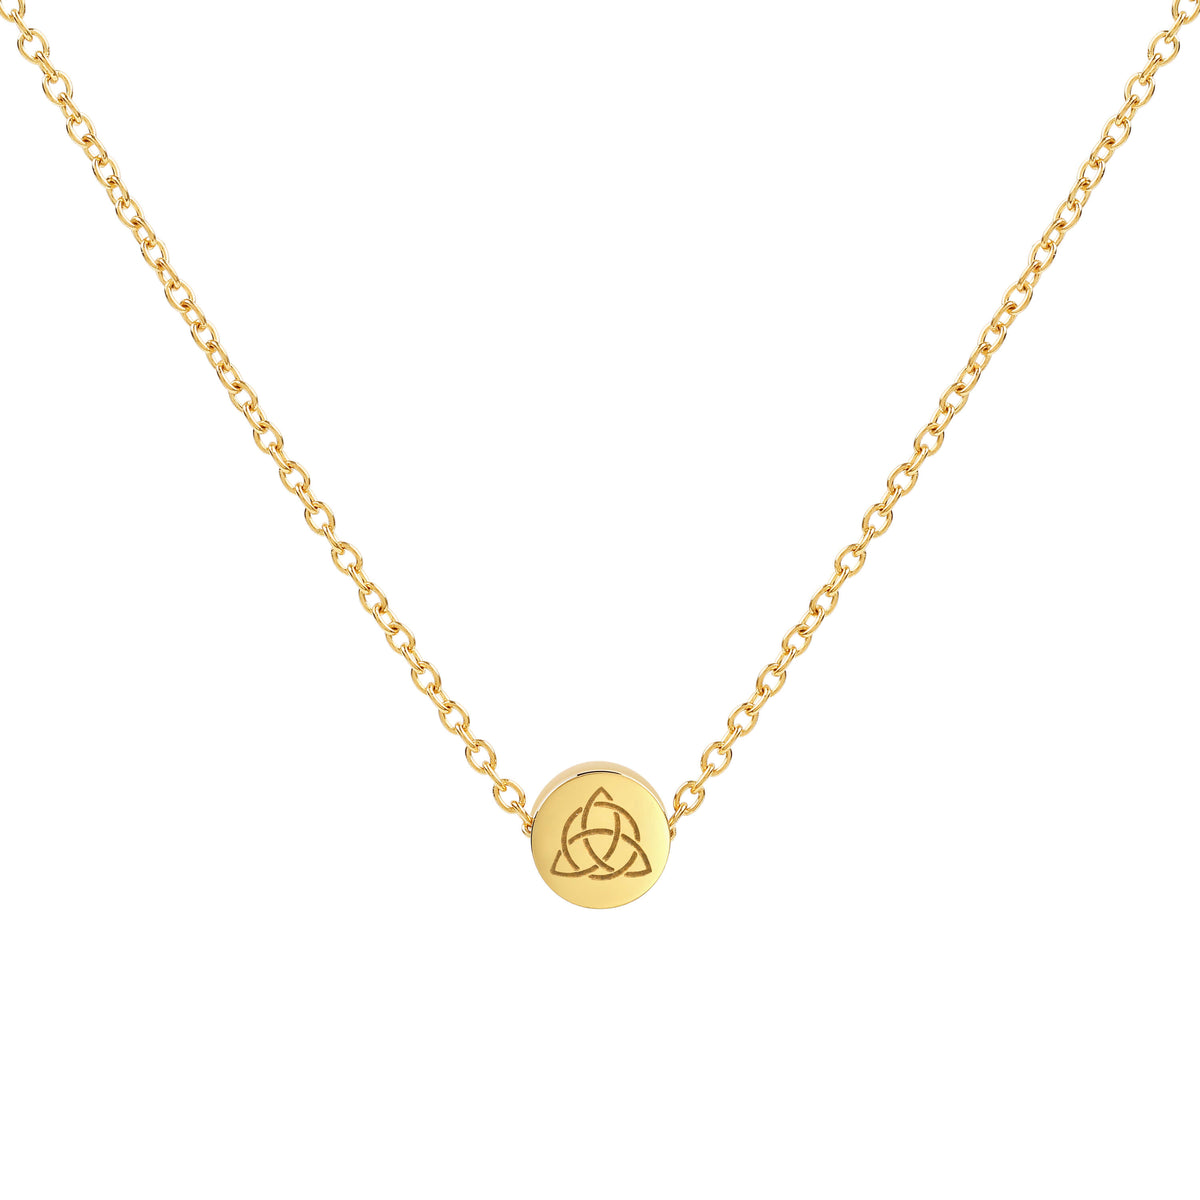 Sale - Triquetra Necklace (16.5 inches length) in Gold